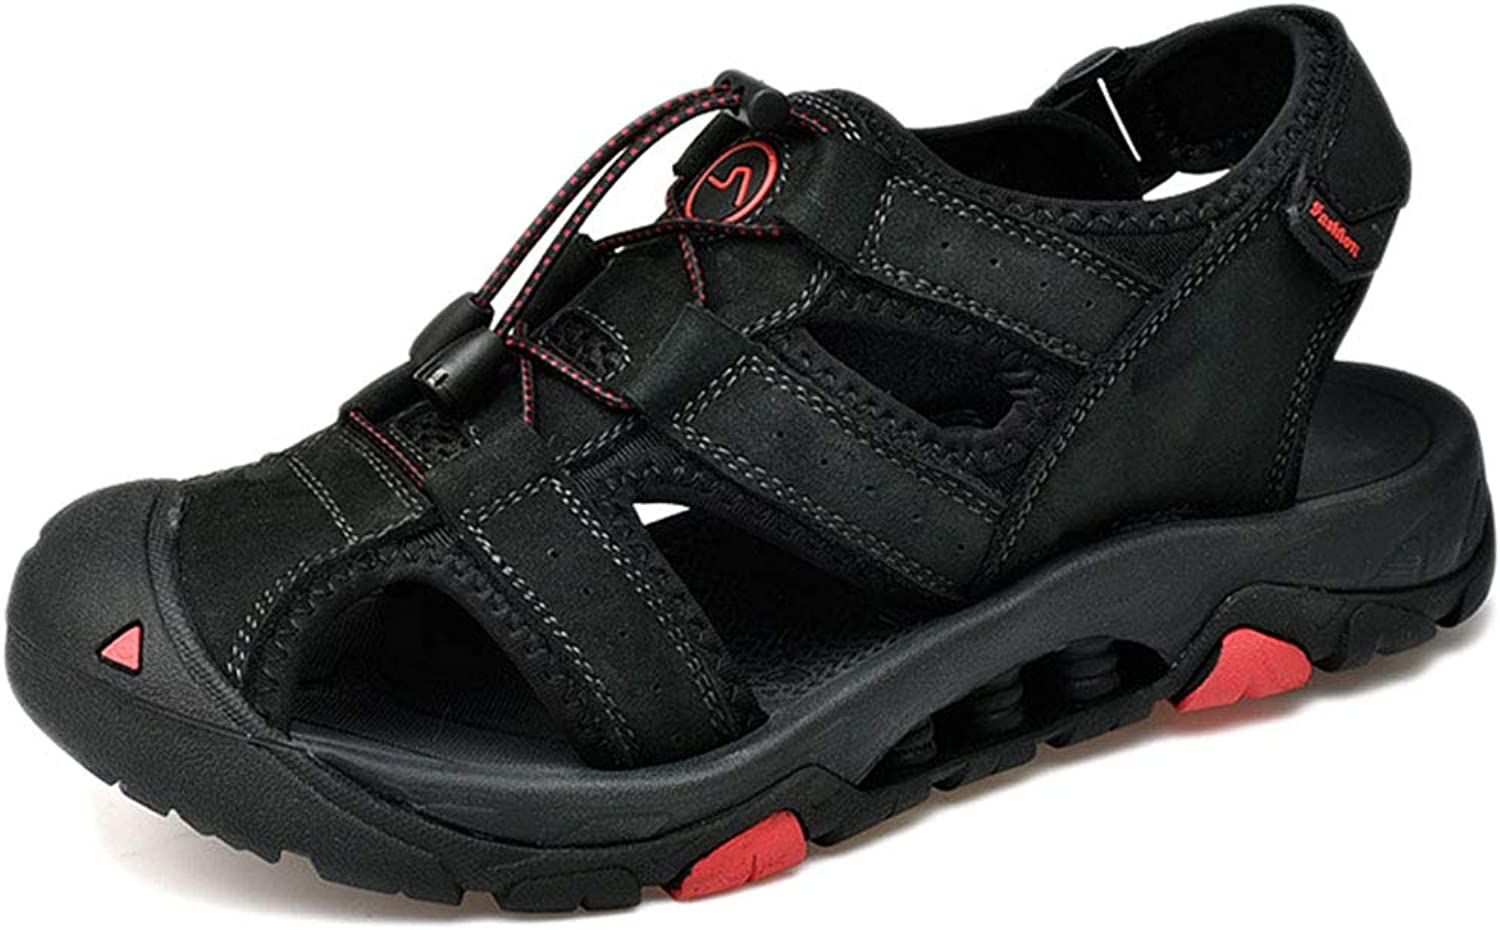 Men's Hiking Sandals,Summer,Travel,Comfort,weightweight,Casual Leather shoes Toe Cap Fashion Outdoor Beach shoes